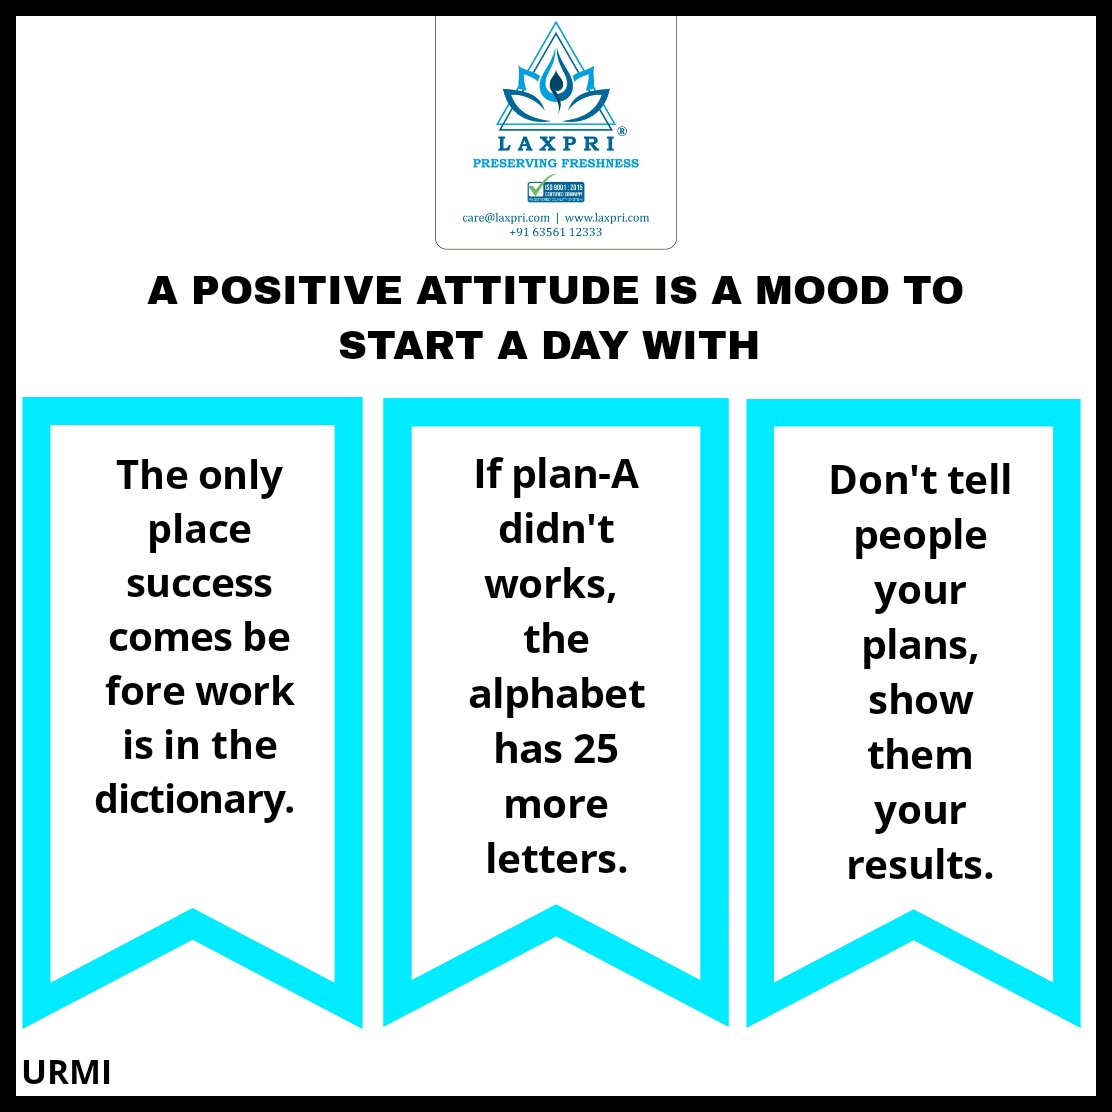 A POSITIVE MIND IS WAY MORE BETTER THEN A NEGATIVE THOUGHT.  #Laxpri  #Laxpripreservingfreshness  #madeinindia #trending #ColdRoom #coldstorage #motivateyourself #MorningWishes #morningquotes #thoughtoftheday #original #wearetheoriginal #TuesdayMotivation  #TuesdayThoughts<br>http://pic.twitter.com/QDJIkXwb5t